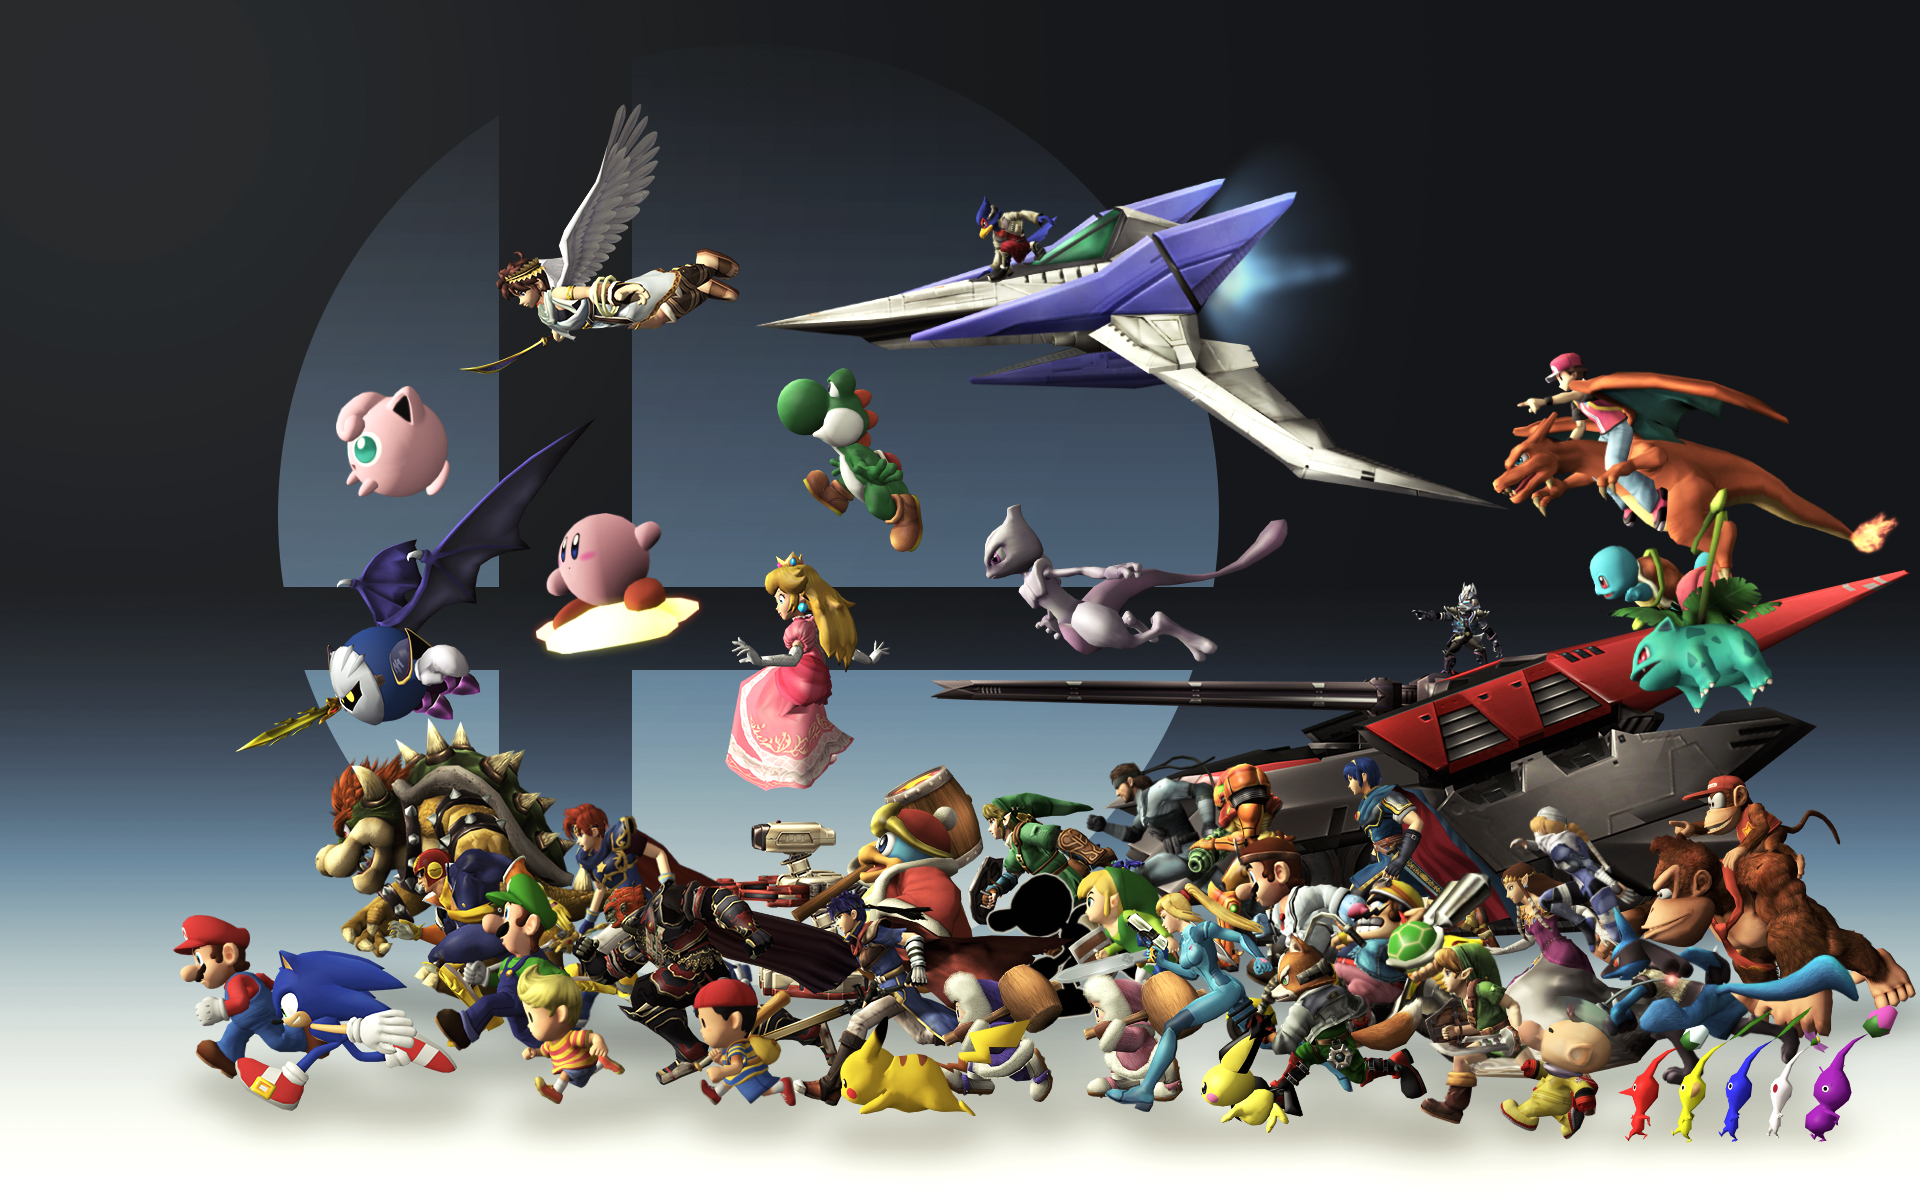 Super Smash Bros Generations Wallpaper By Tailsmiles249 On